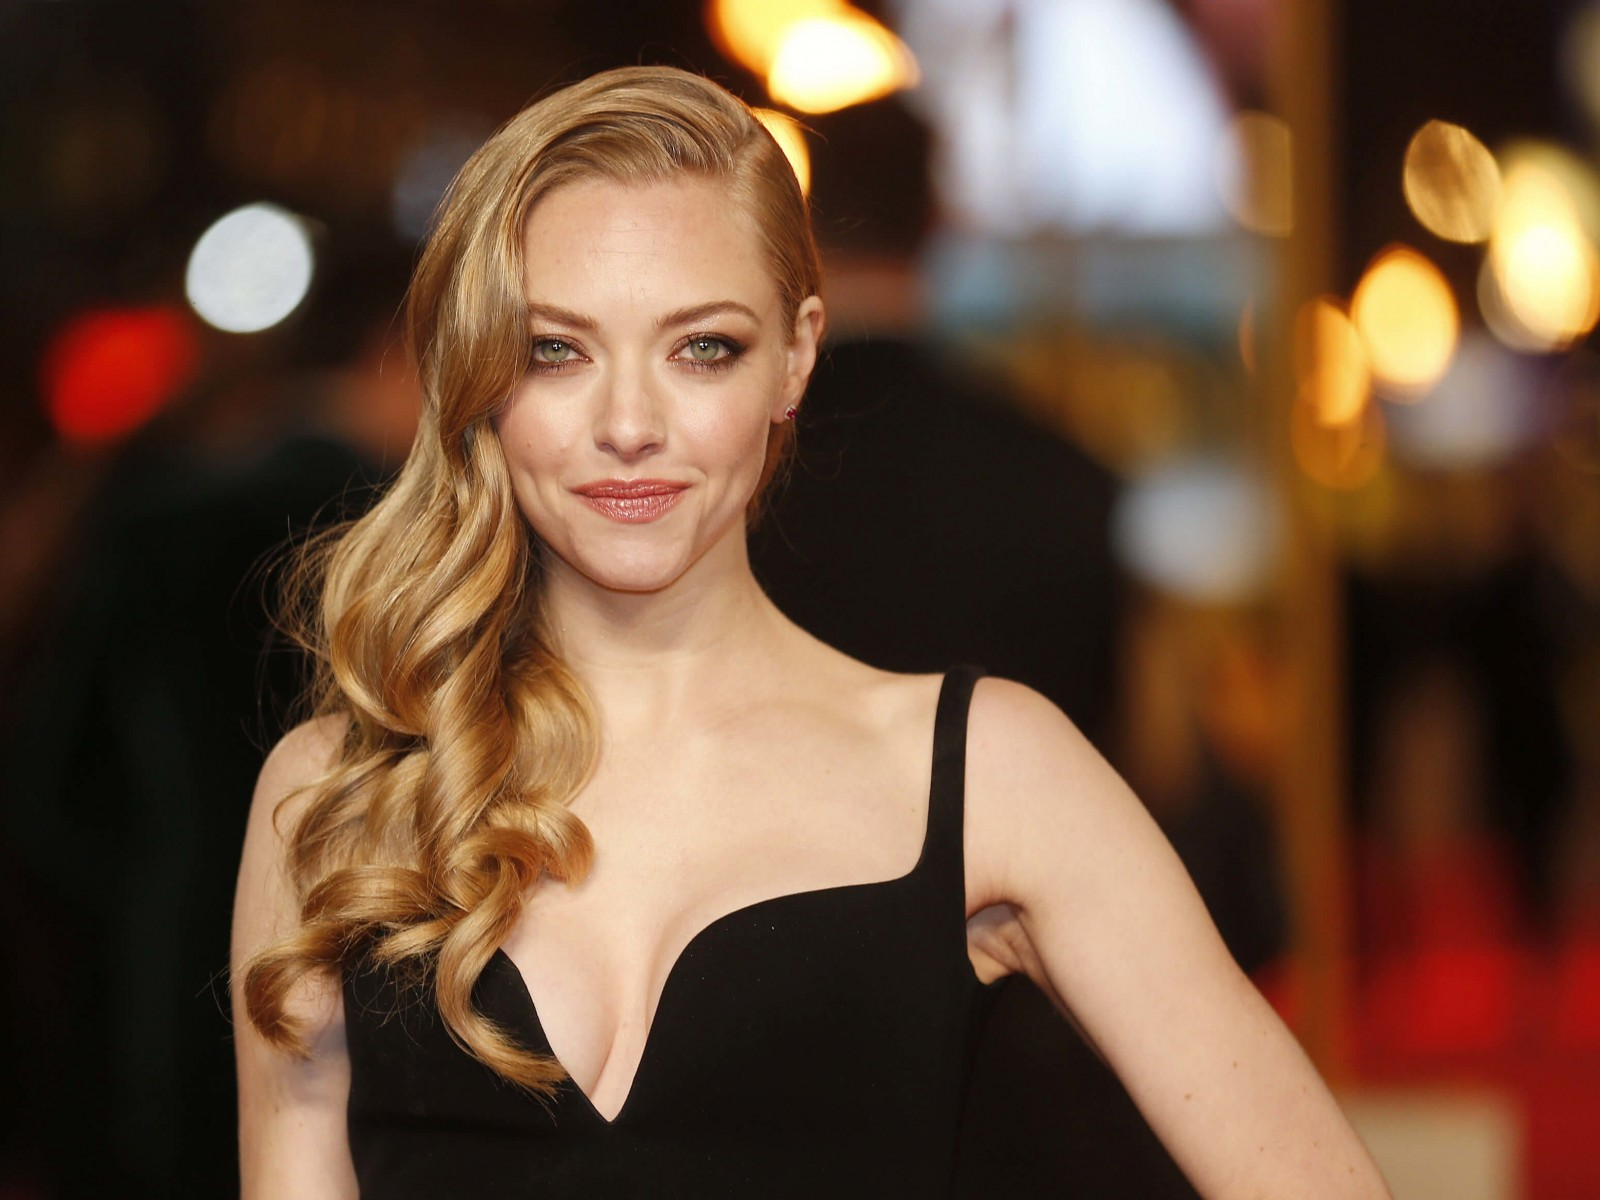 Amanda Seyfried Wallpaper for Desktop 1600x1200